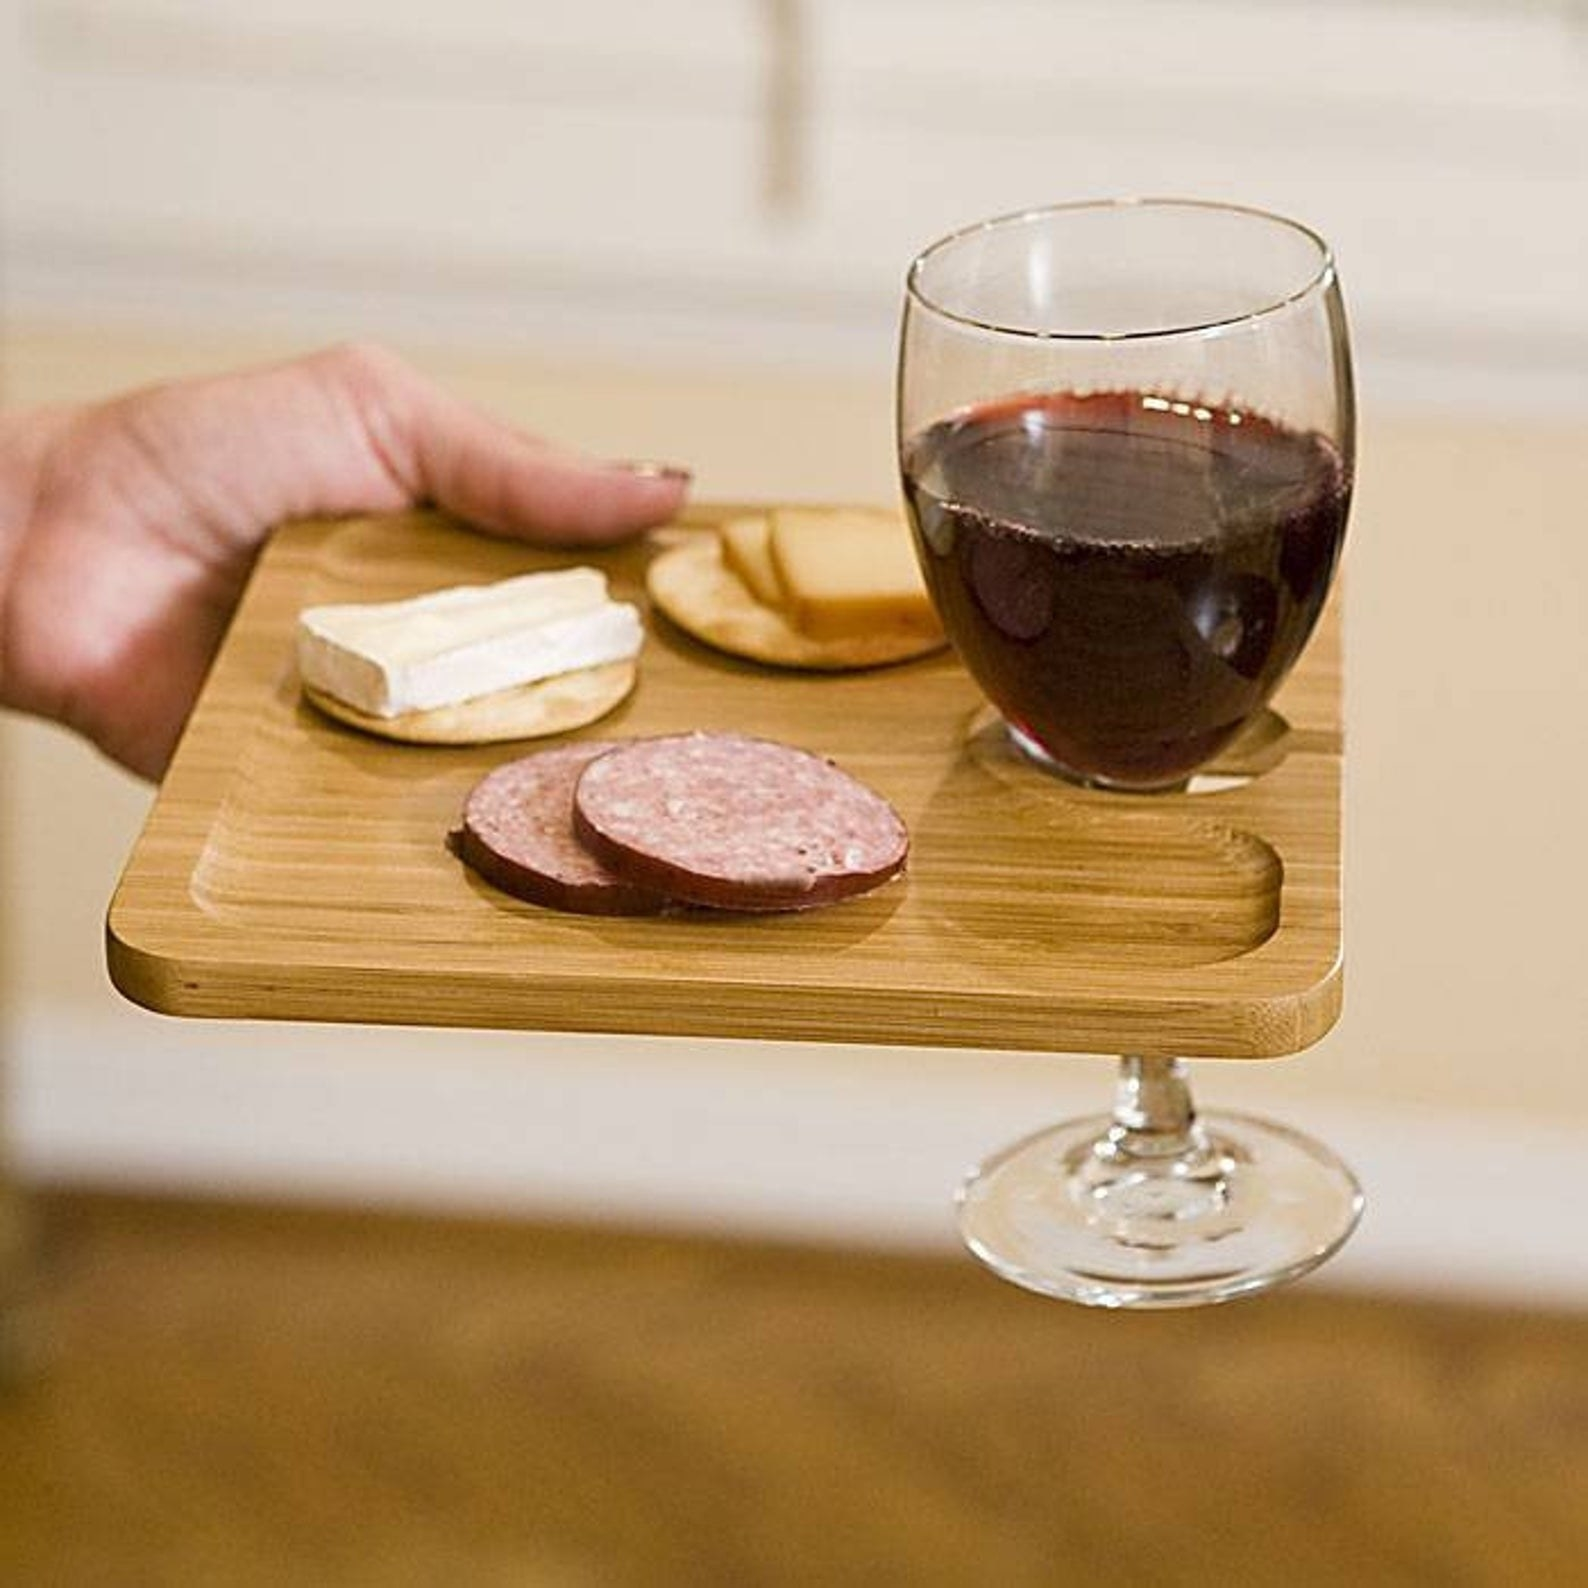 A model holding an individual light wood cheese plate with a small hole a wine glass can rest in